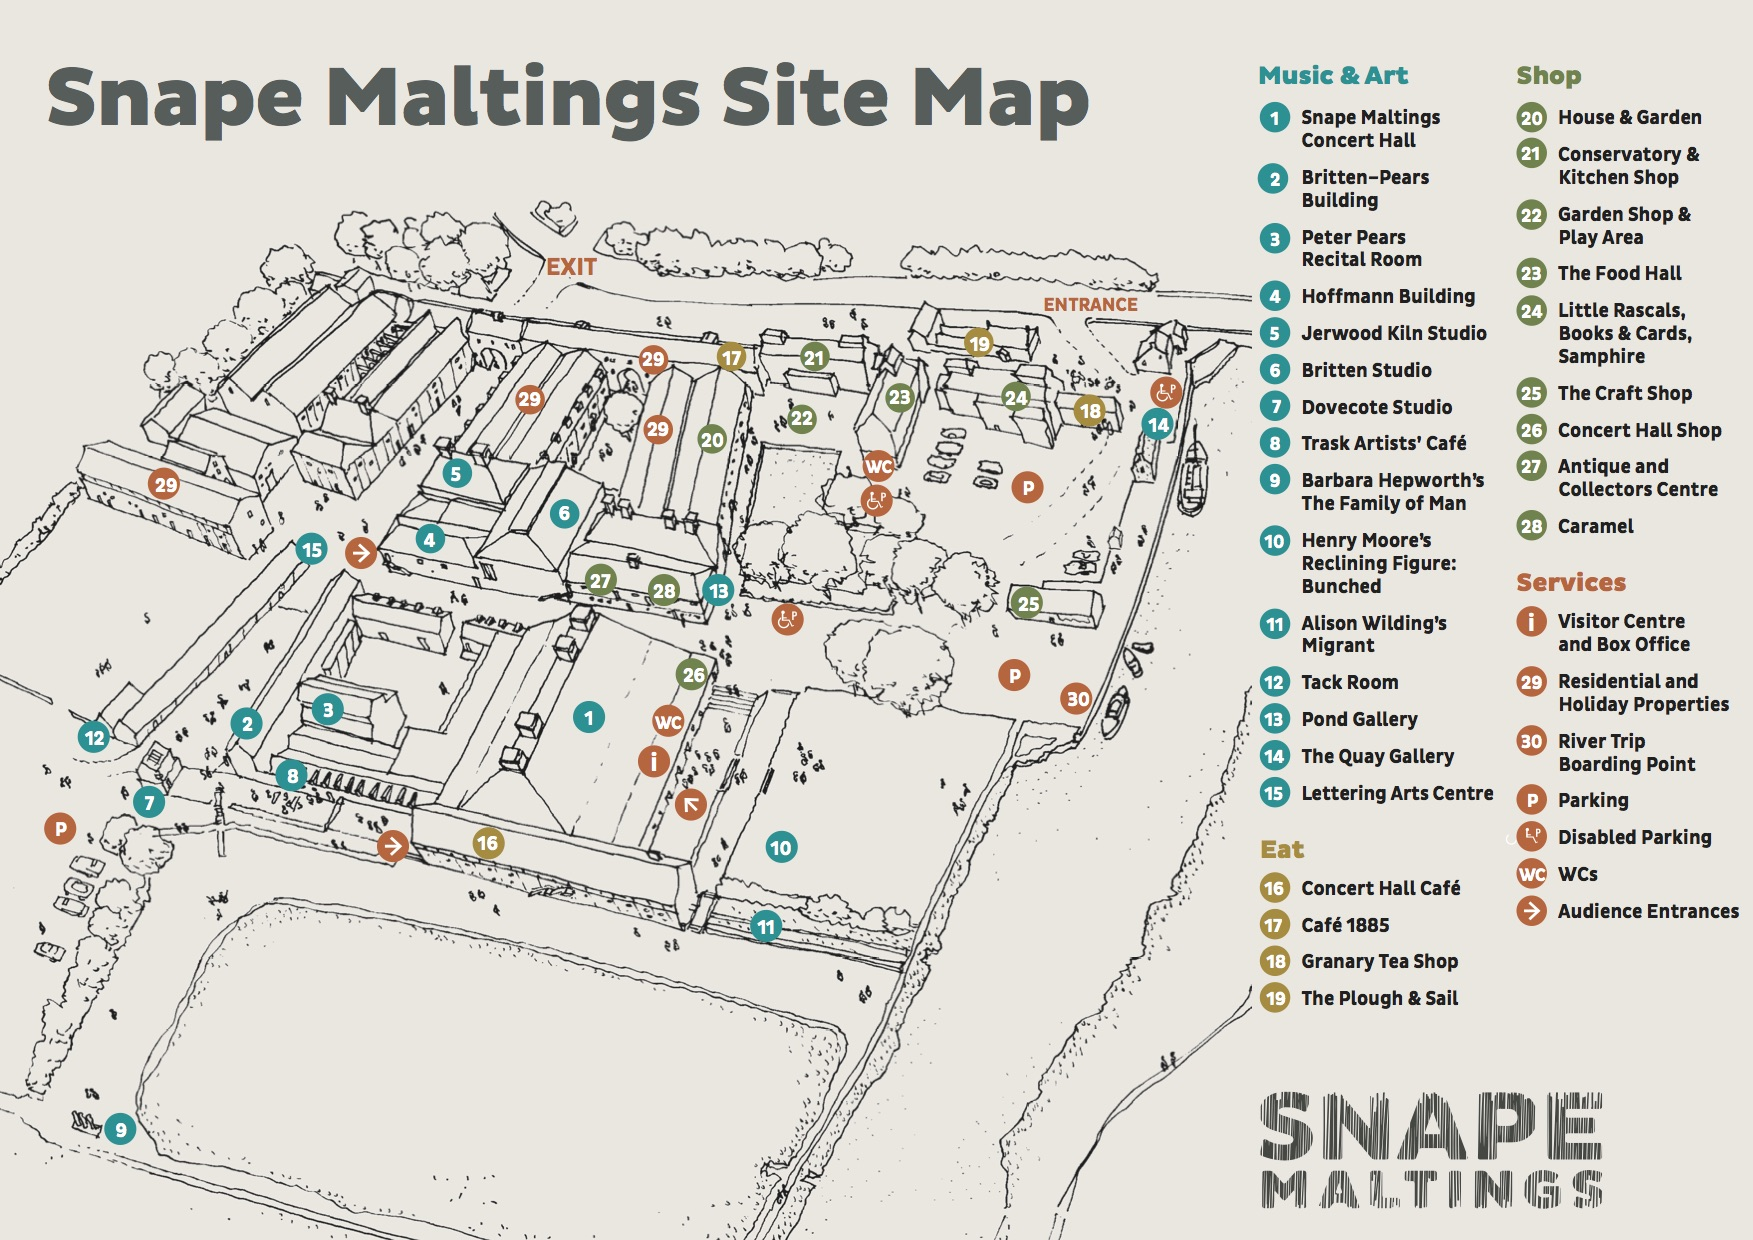 Snape Maltings site map, with numbers matching some of the locations list